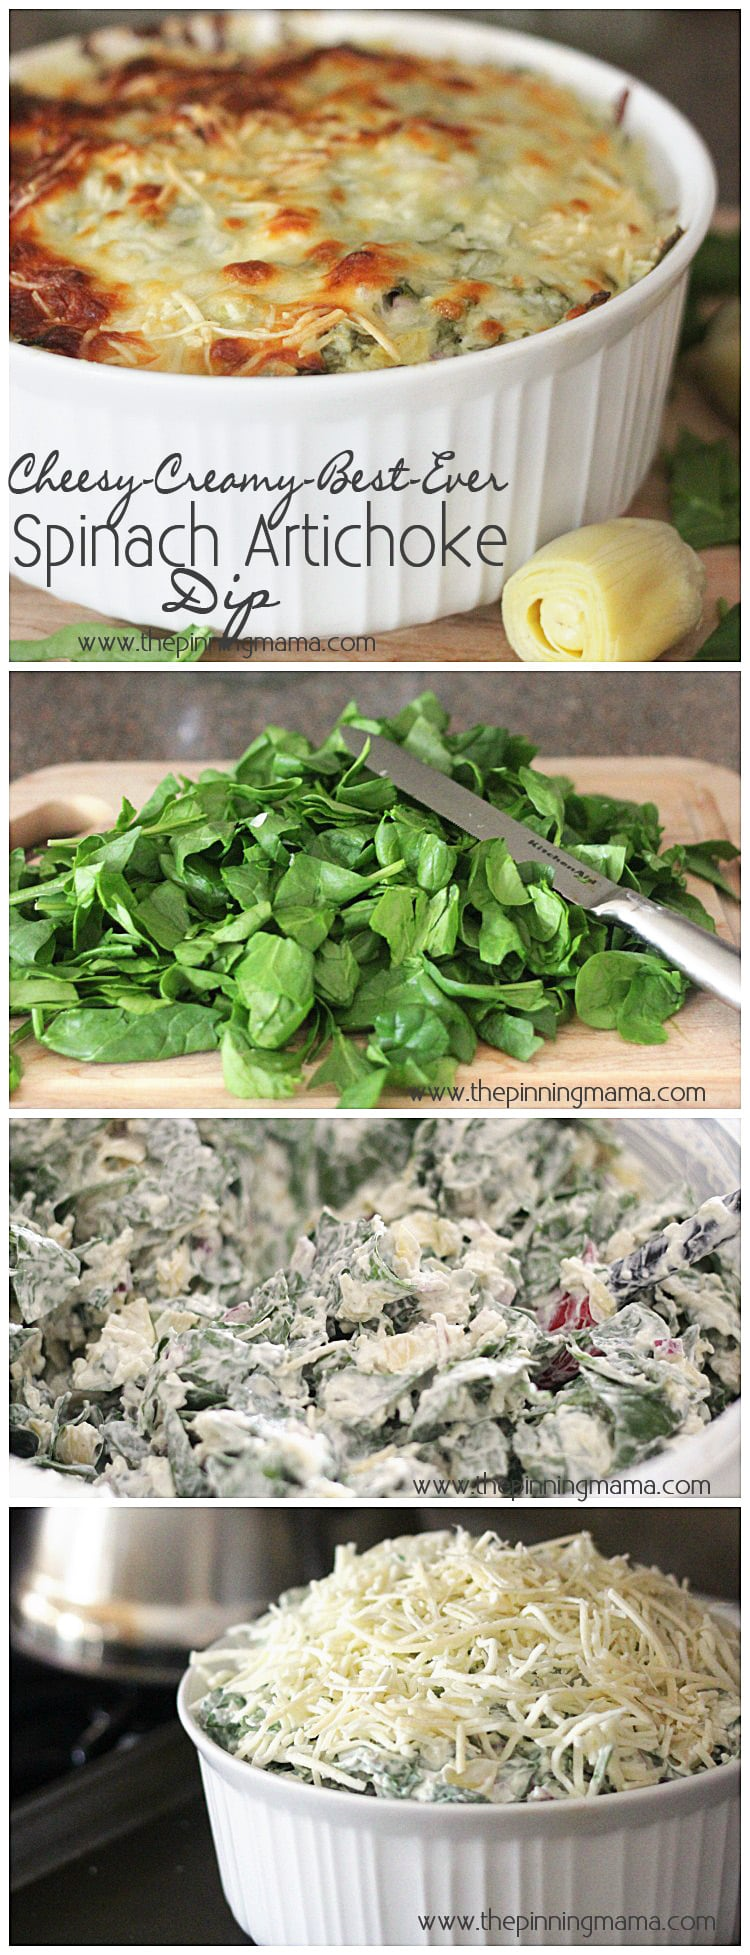 Best Ever Spinach Artichoke Dip Recipe | The Pinning Mama